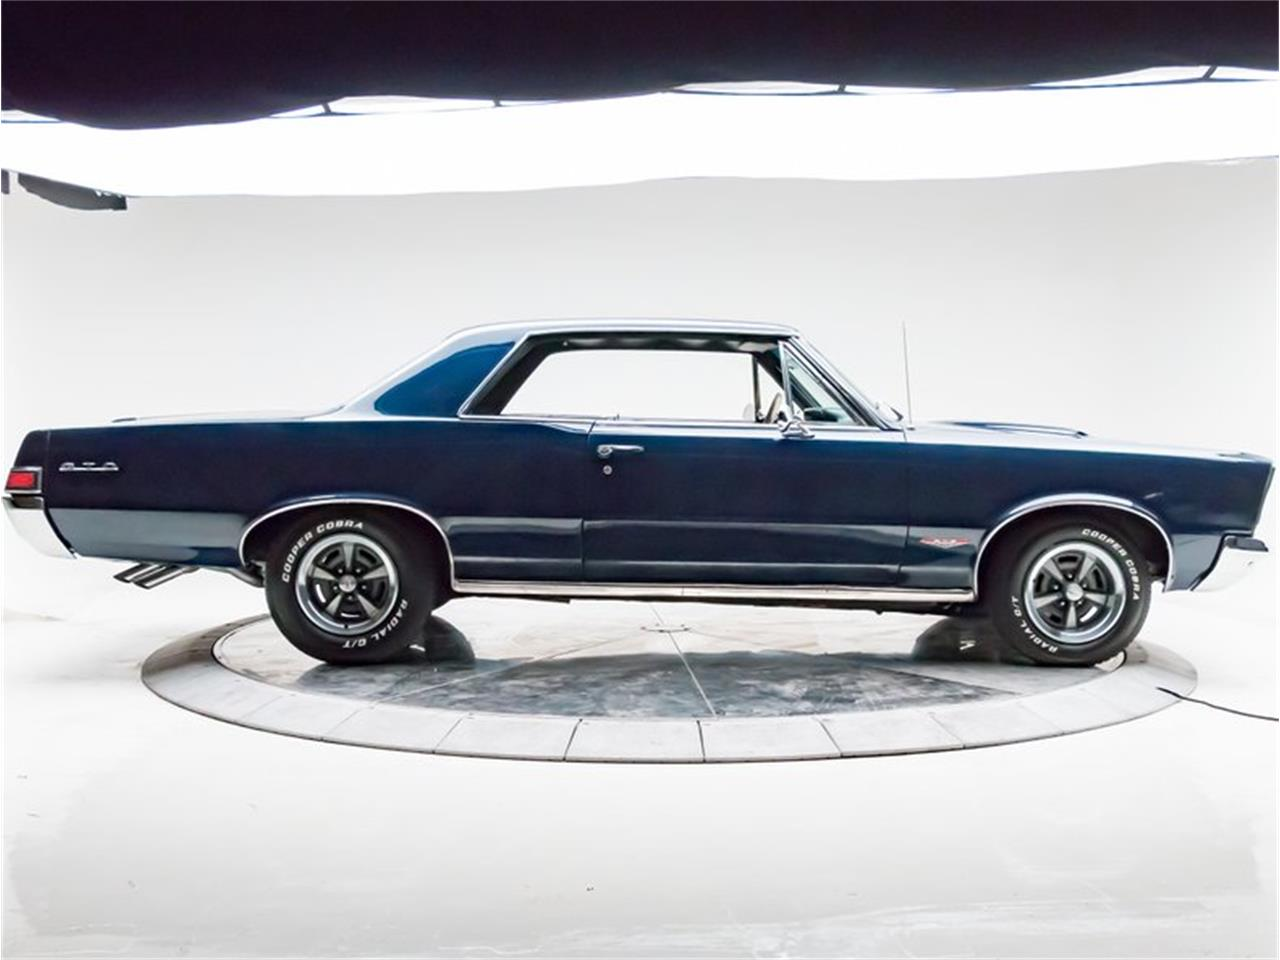 Large Picture of '65 GTO located in Iowa - $37,950.00 Offered by Duffy's Classic Cars - N6UR